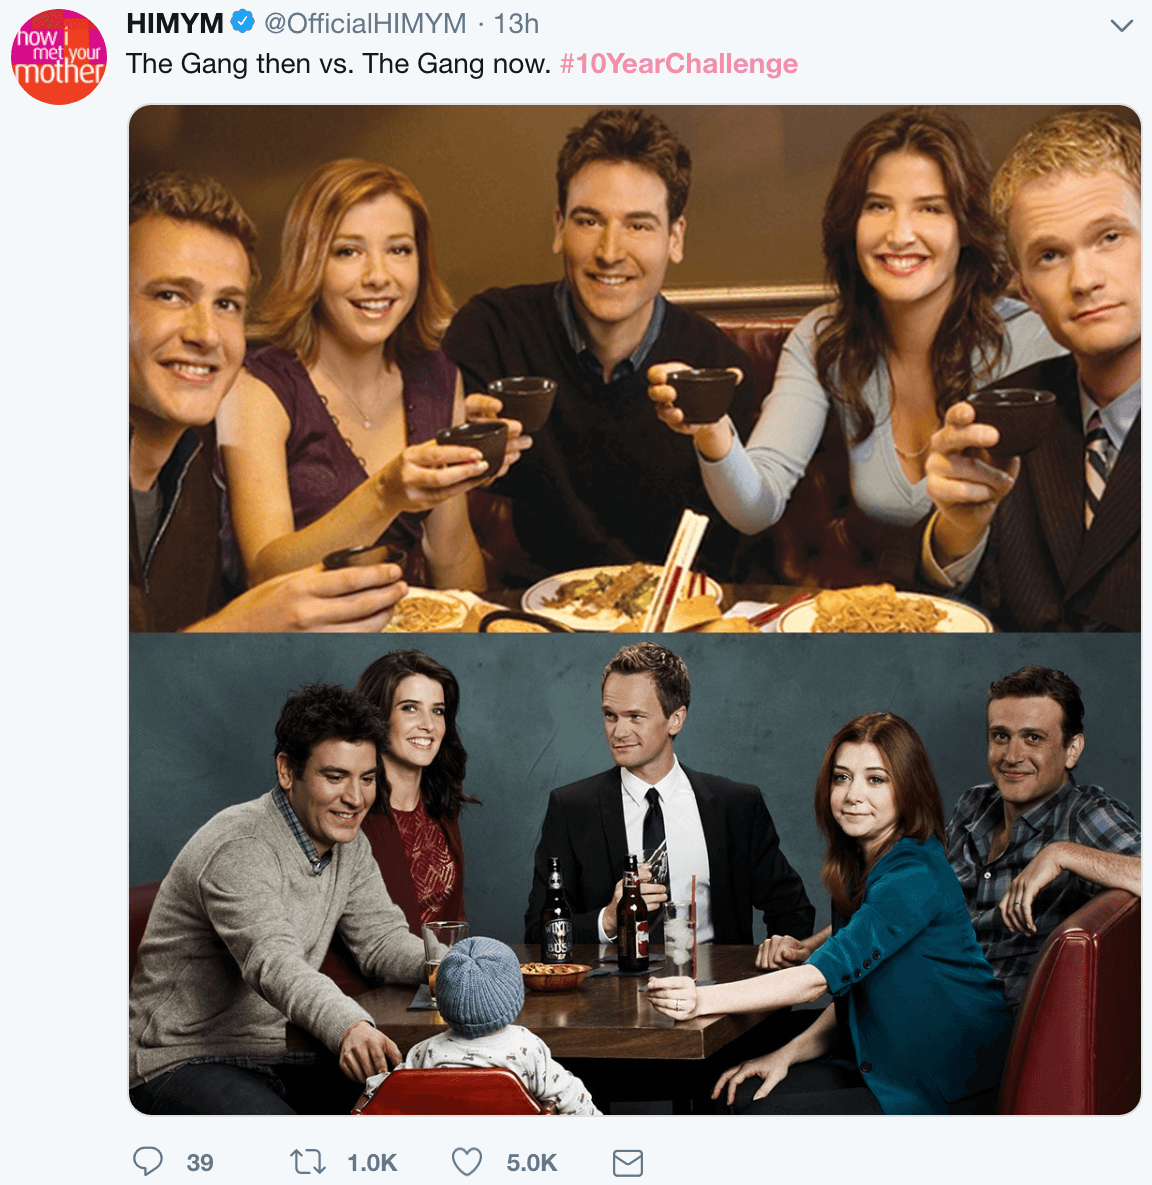 HIMYM cast 10 year challenge